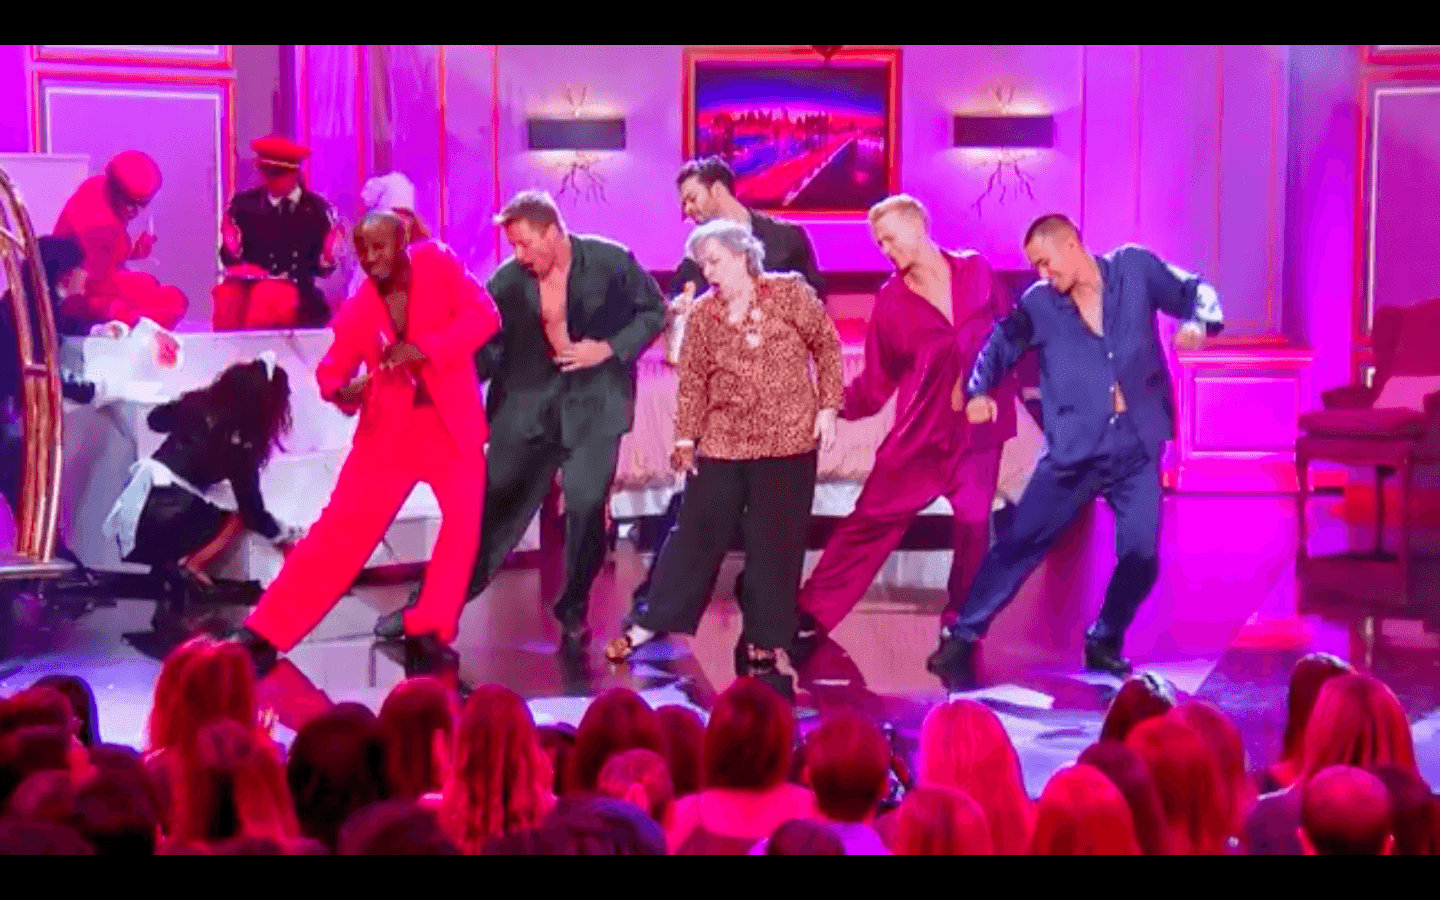 The 70-year-old Bates impresses with her dance moves | Image credit: Facebook/Lip Sync Battle.